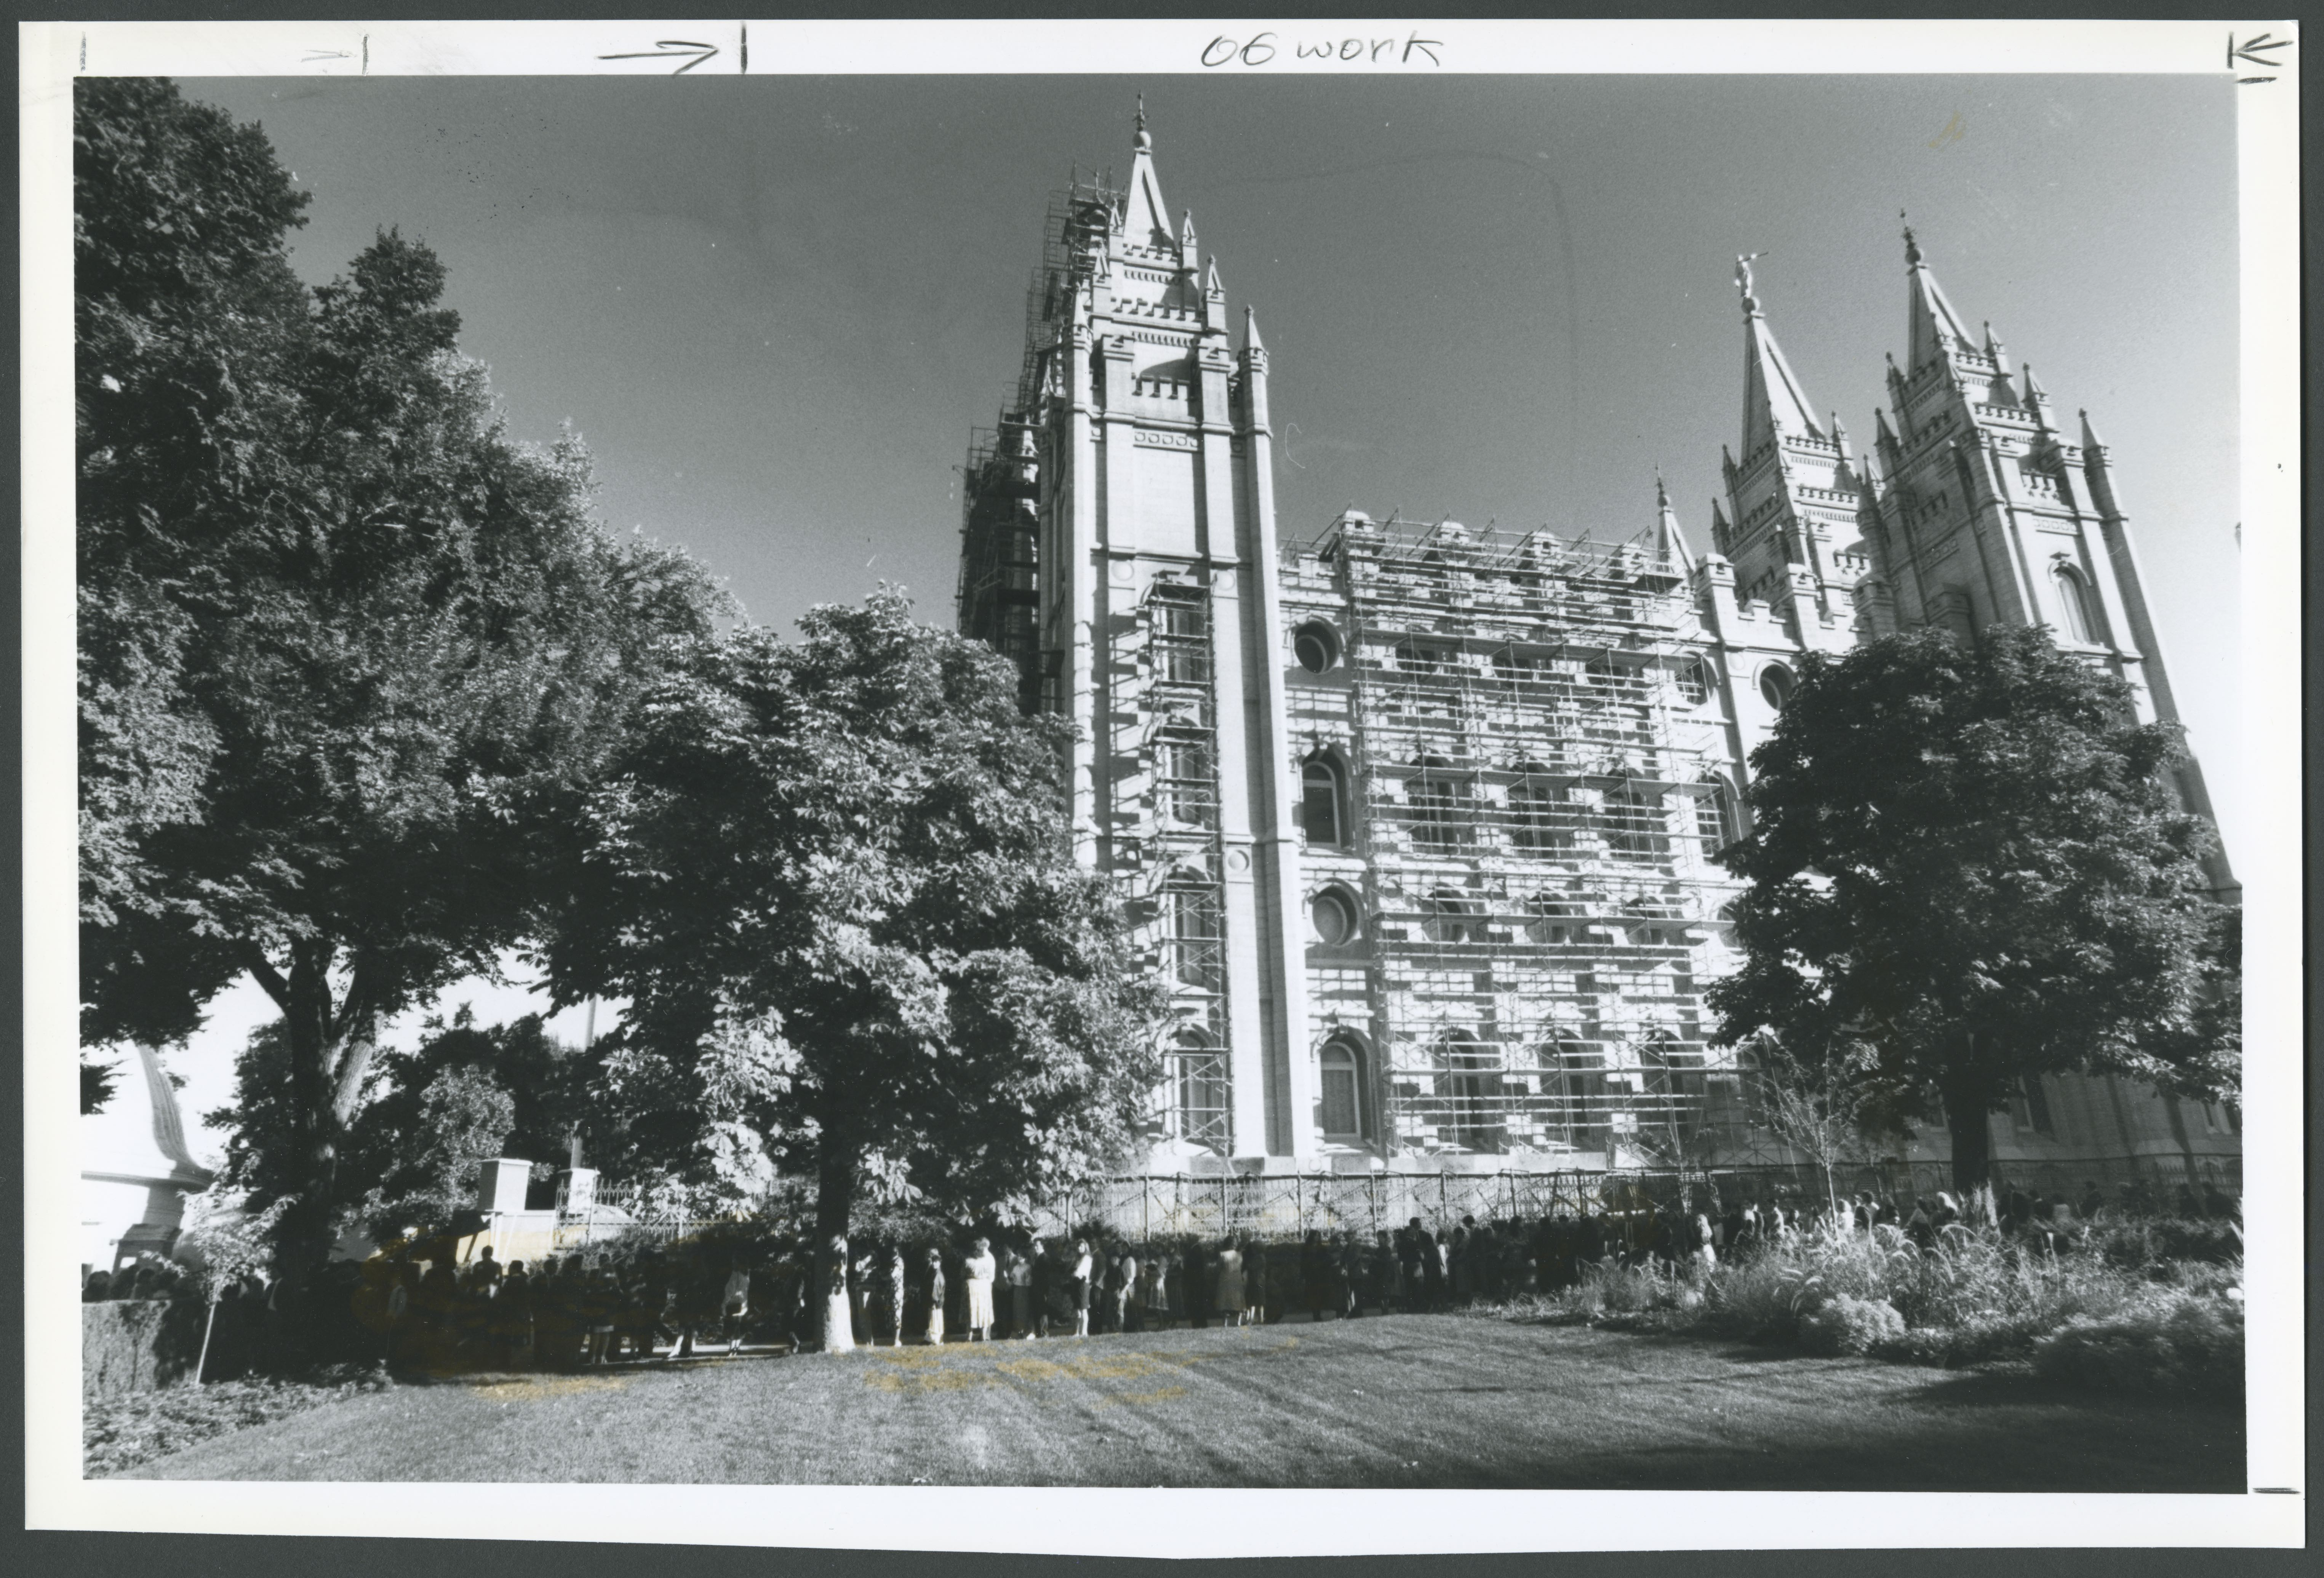 Scaffolding surrounds the Salt Lake Temple as Church members gather for general conference on Oct. 6, 1991.